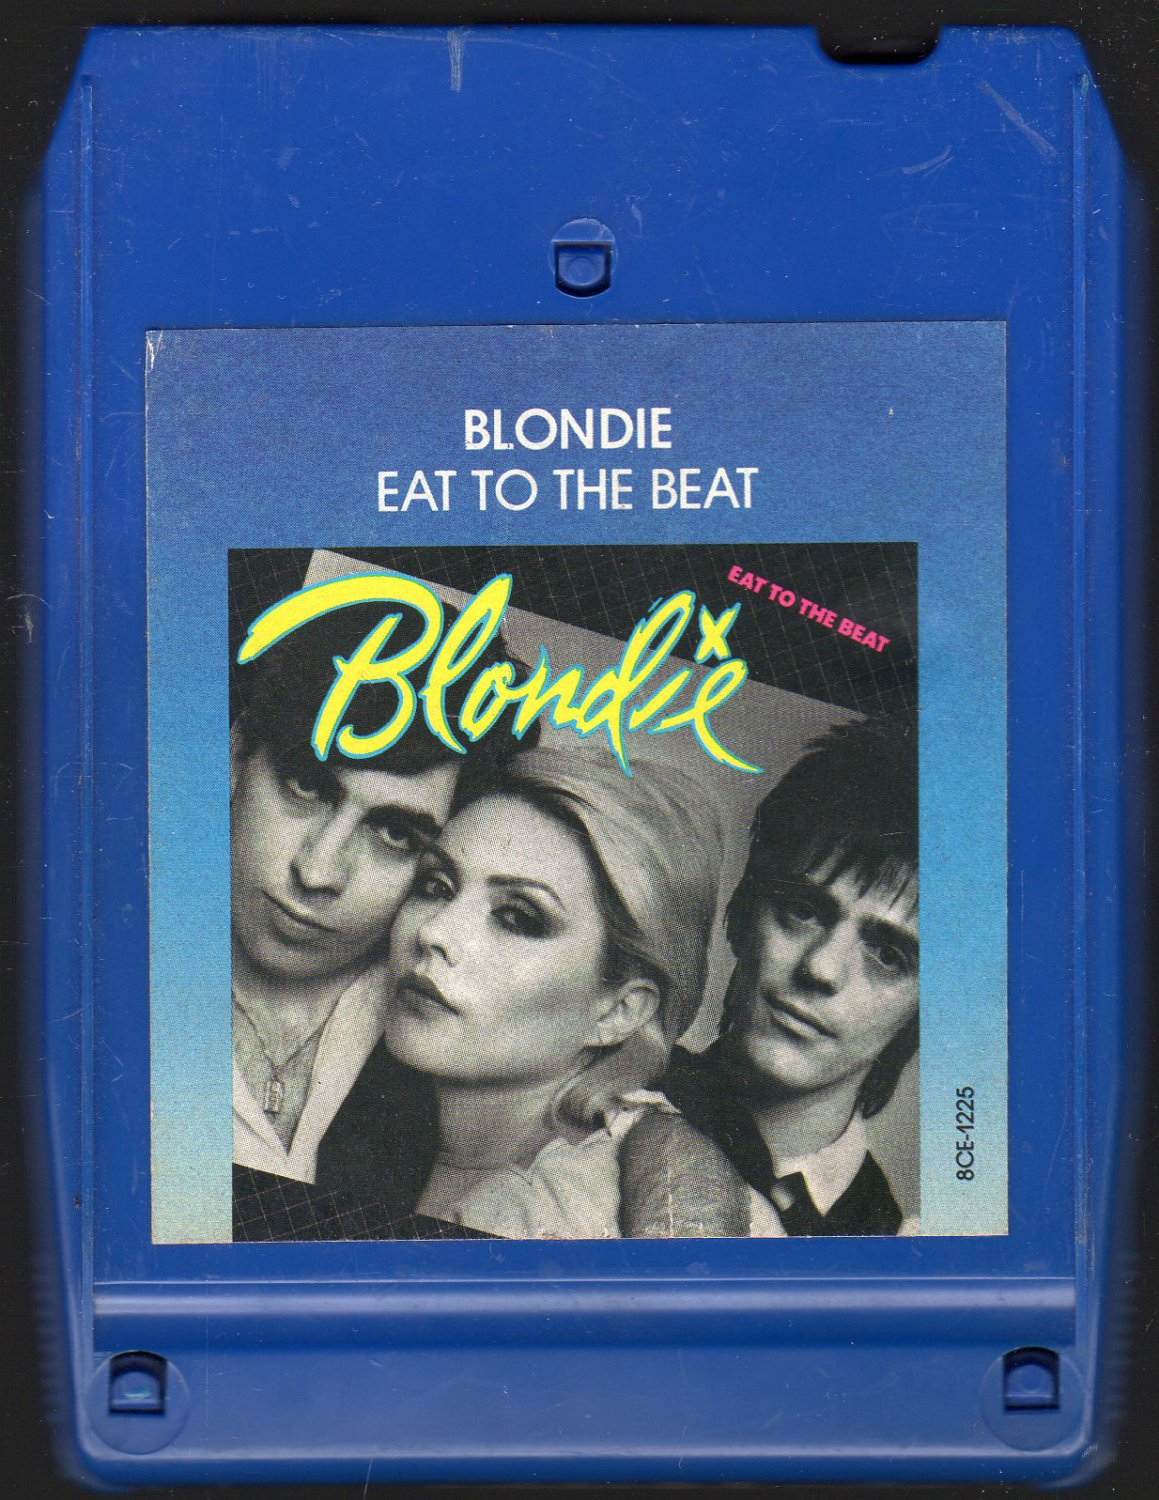 Blondie - Eat To The Beat 1979 CHRYSALIS A30 8-track tape